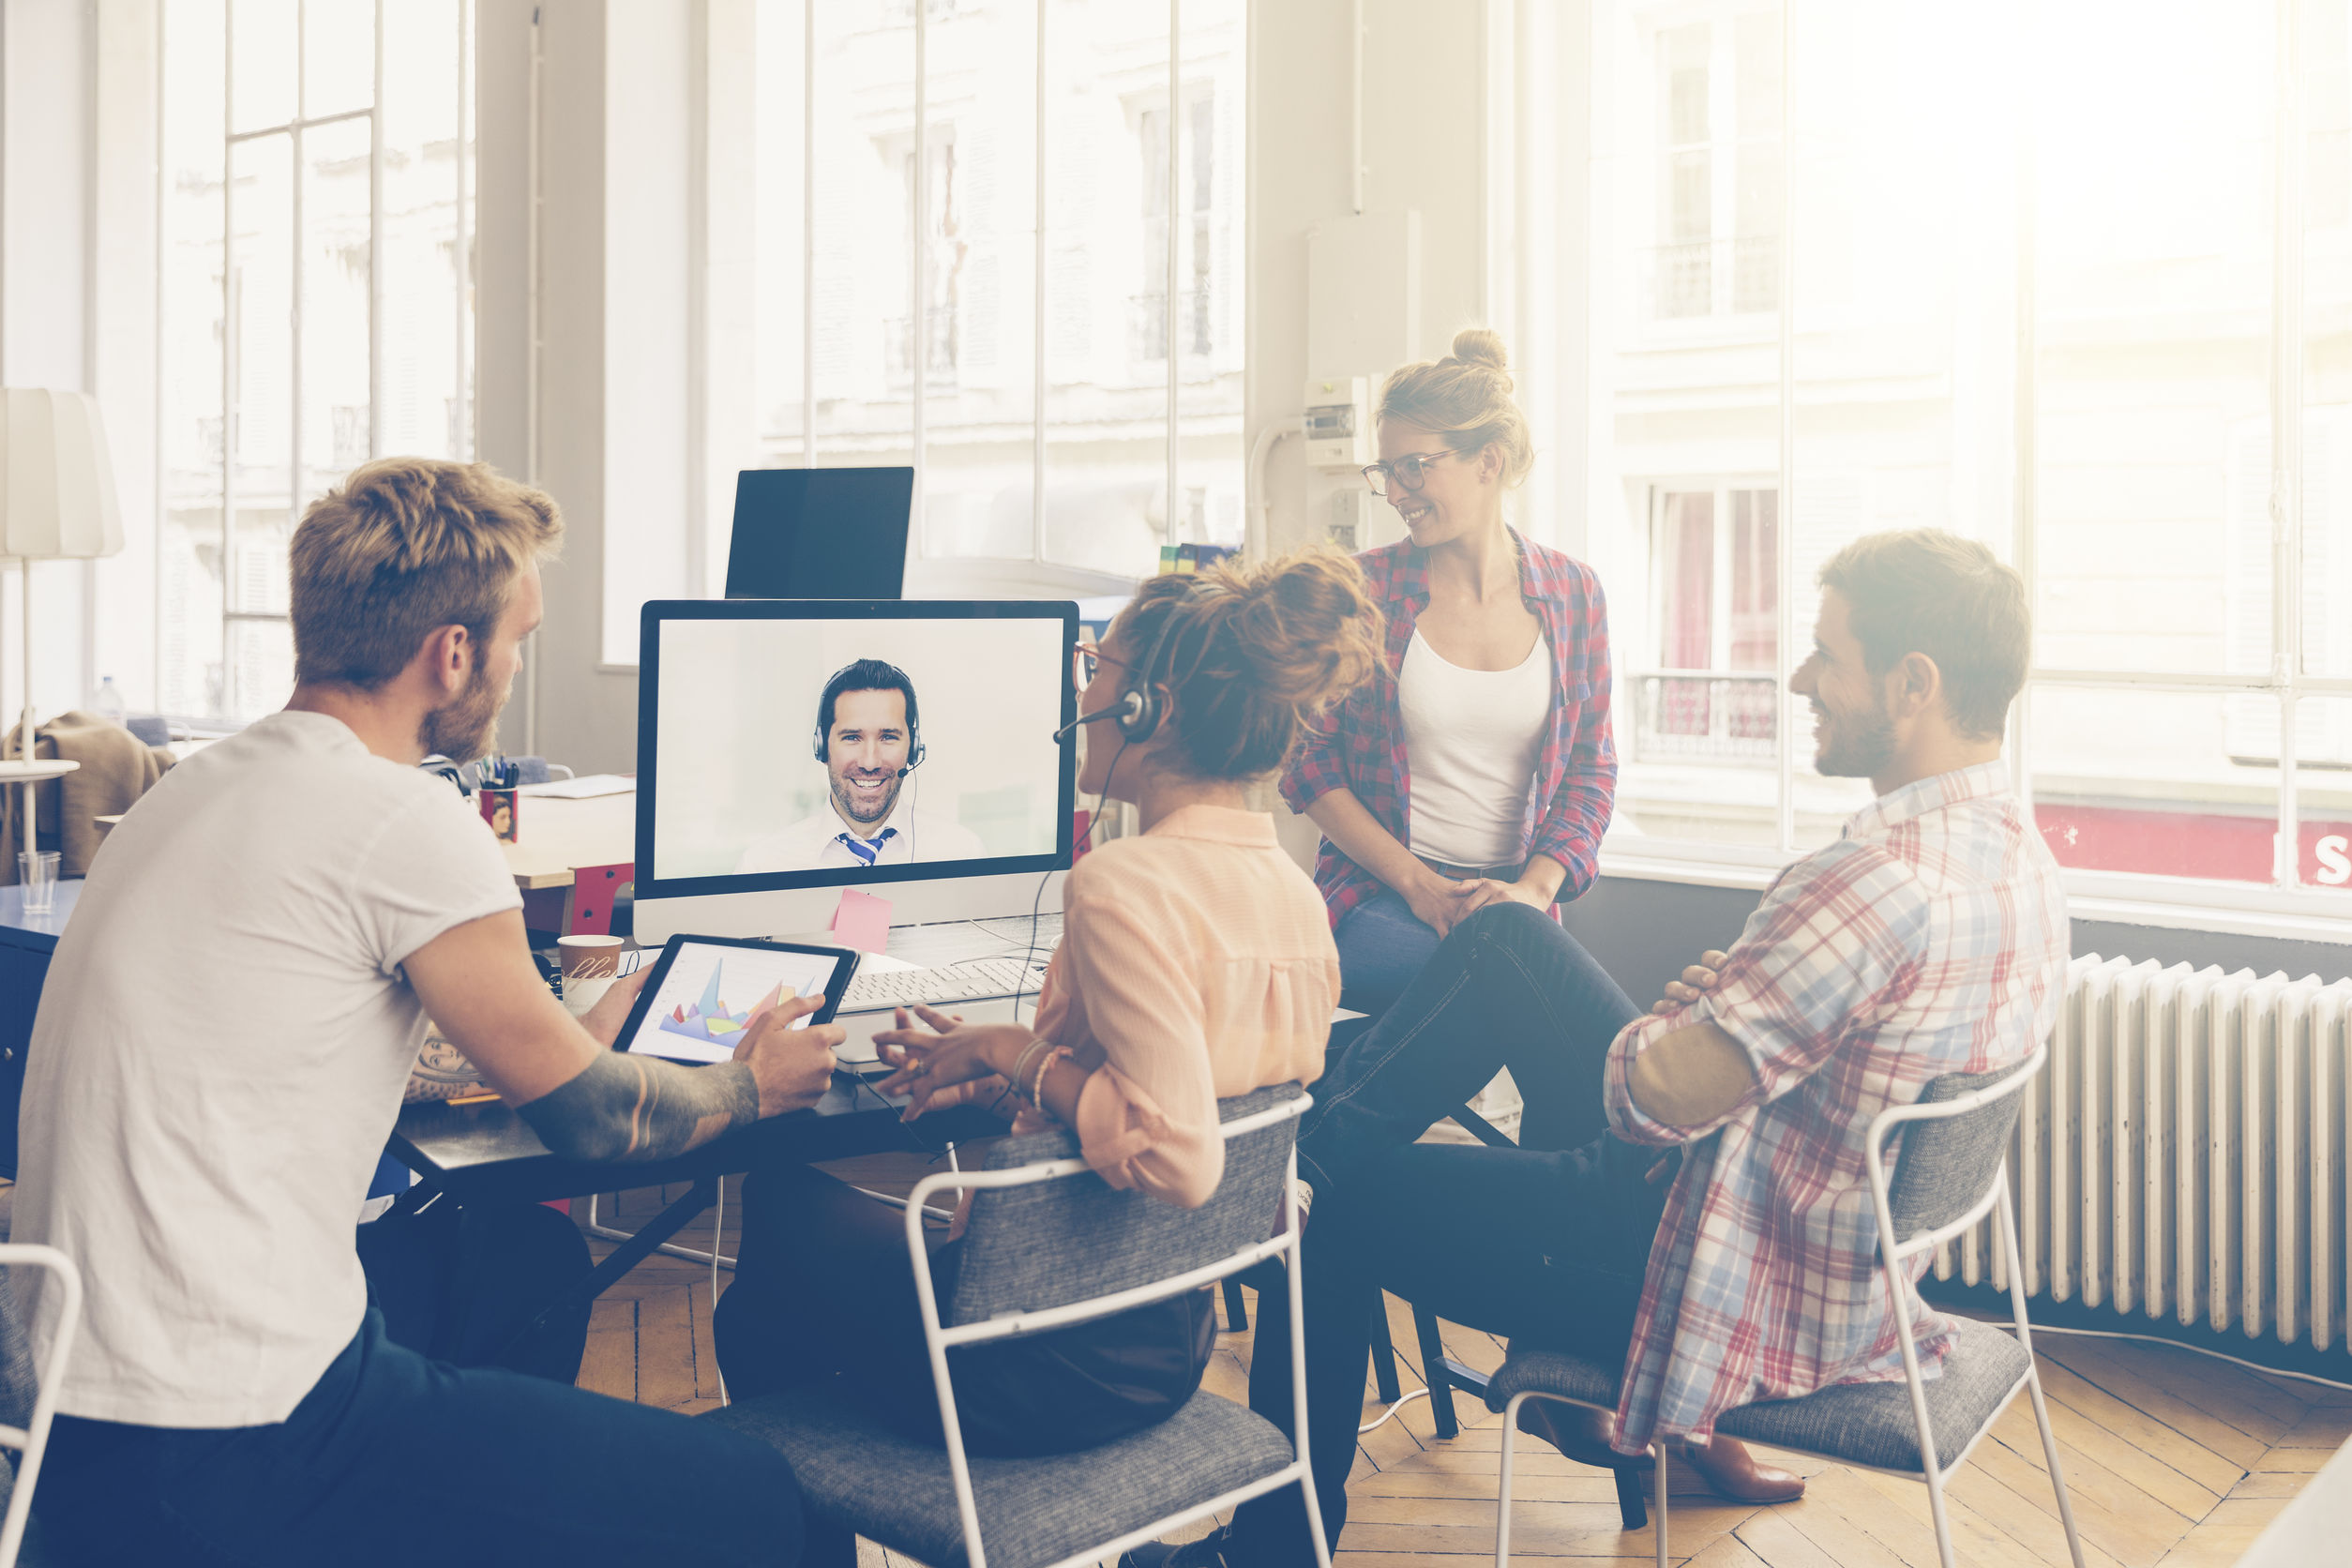 THERE'S AN UNCONSCIOUS BIAS IN VIRTUAL MEETINGS. HERE'S HOW YOU CAN AVOID IT